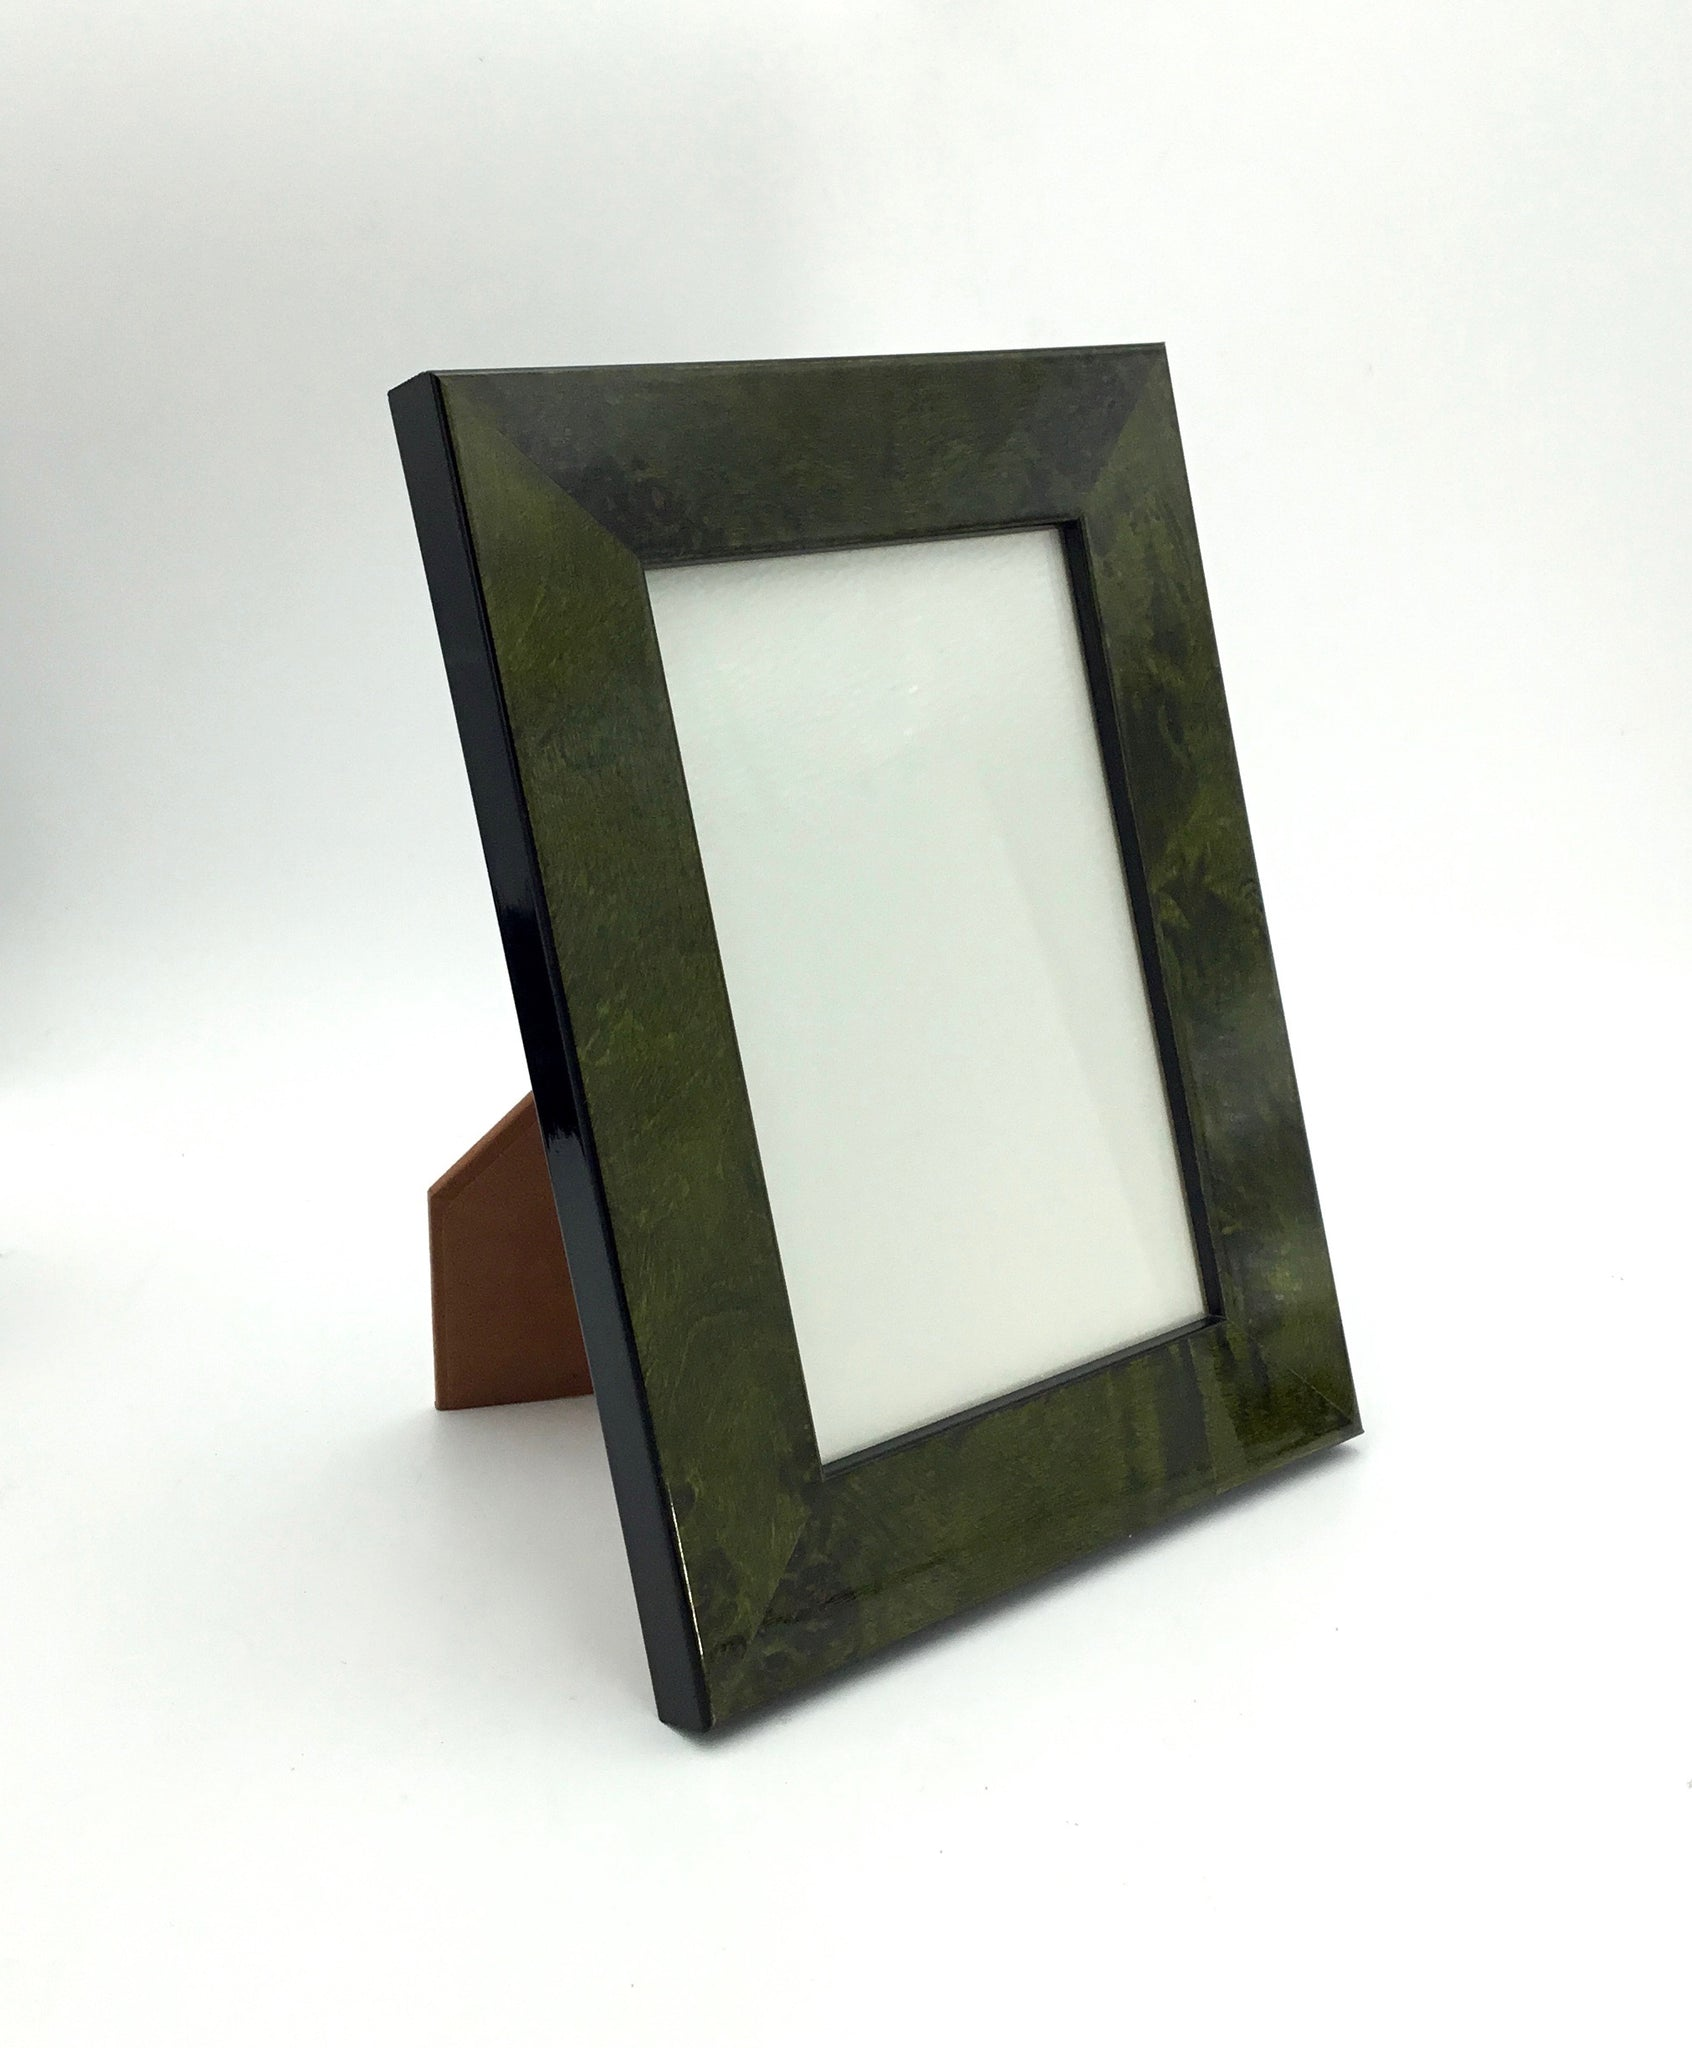 Tizo Picture Frame in Olive Green